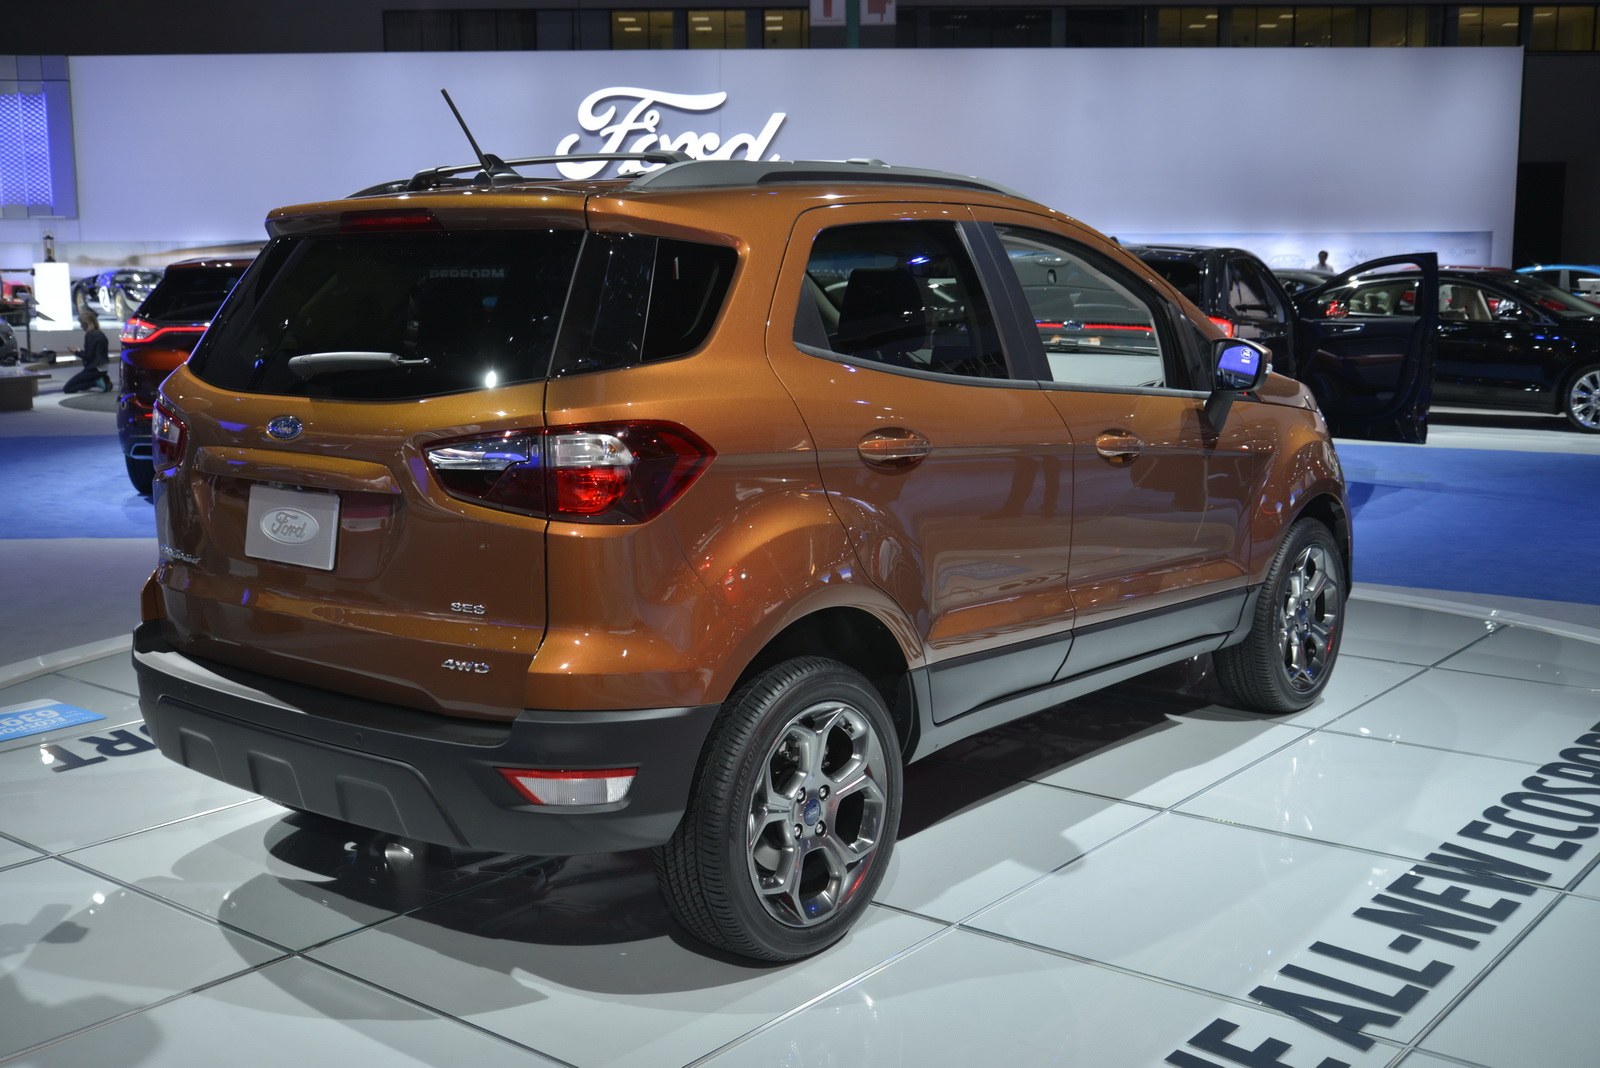 Fords Baby SUV The New EcoSport Lands In The US